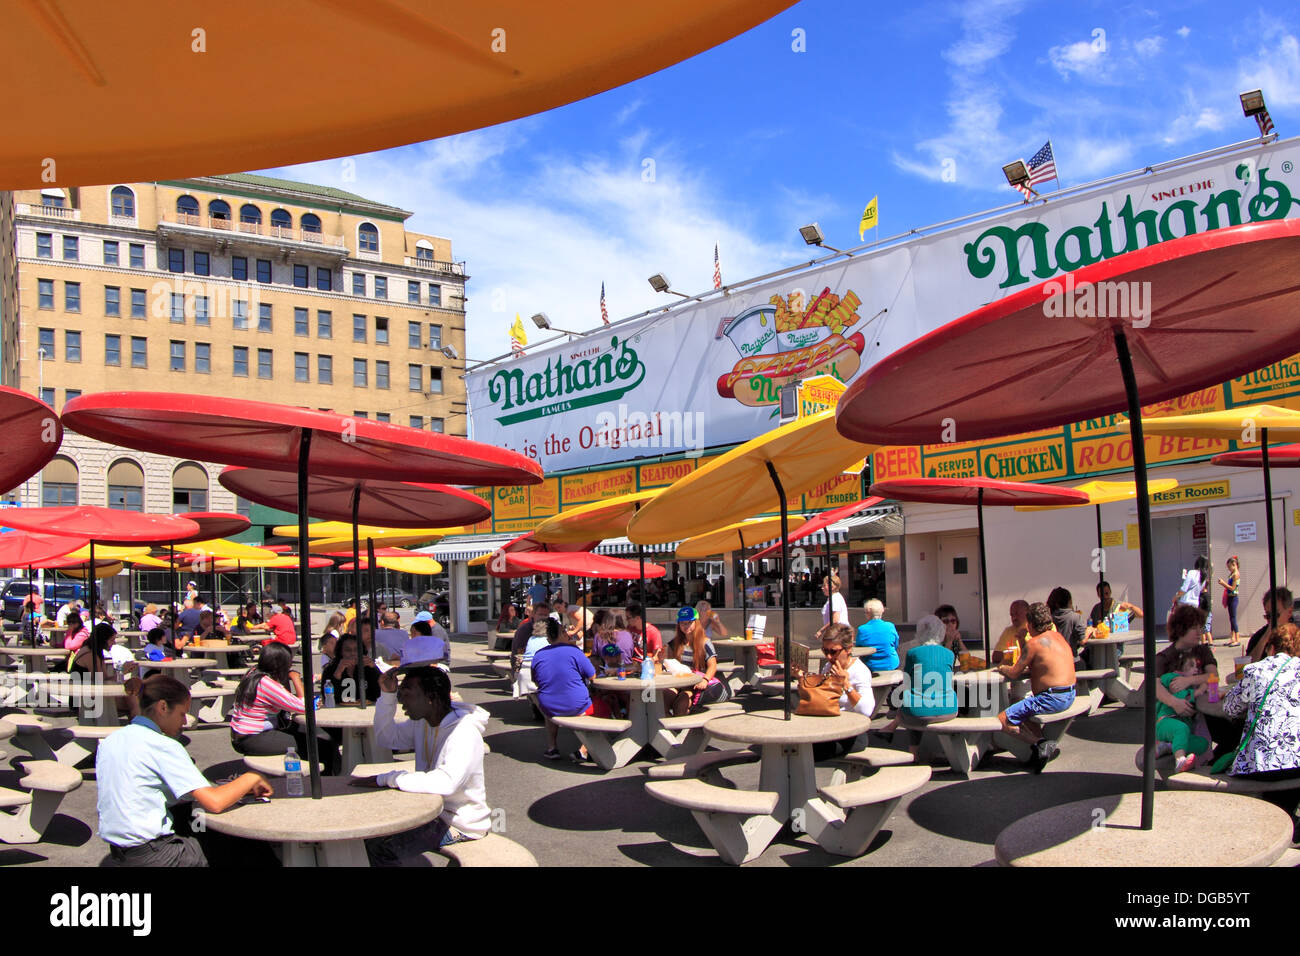 Nathan Famous Hot Dogs Where To Buy